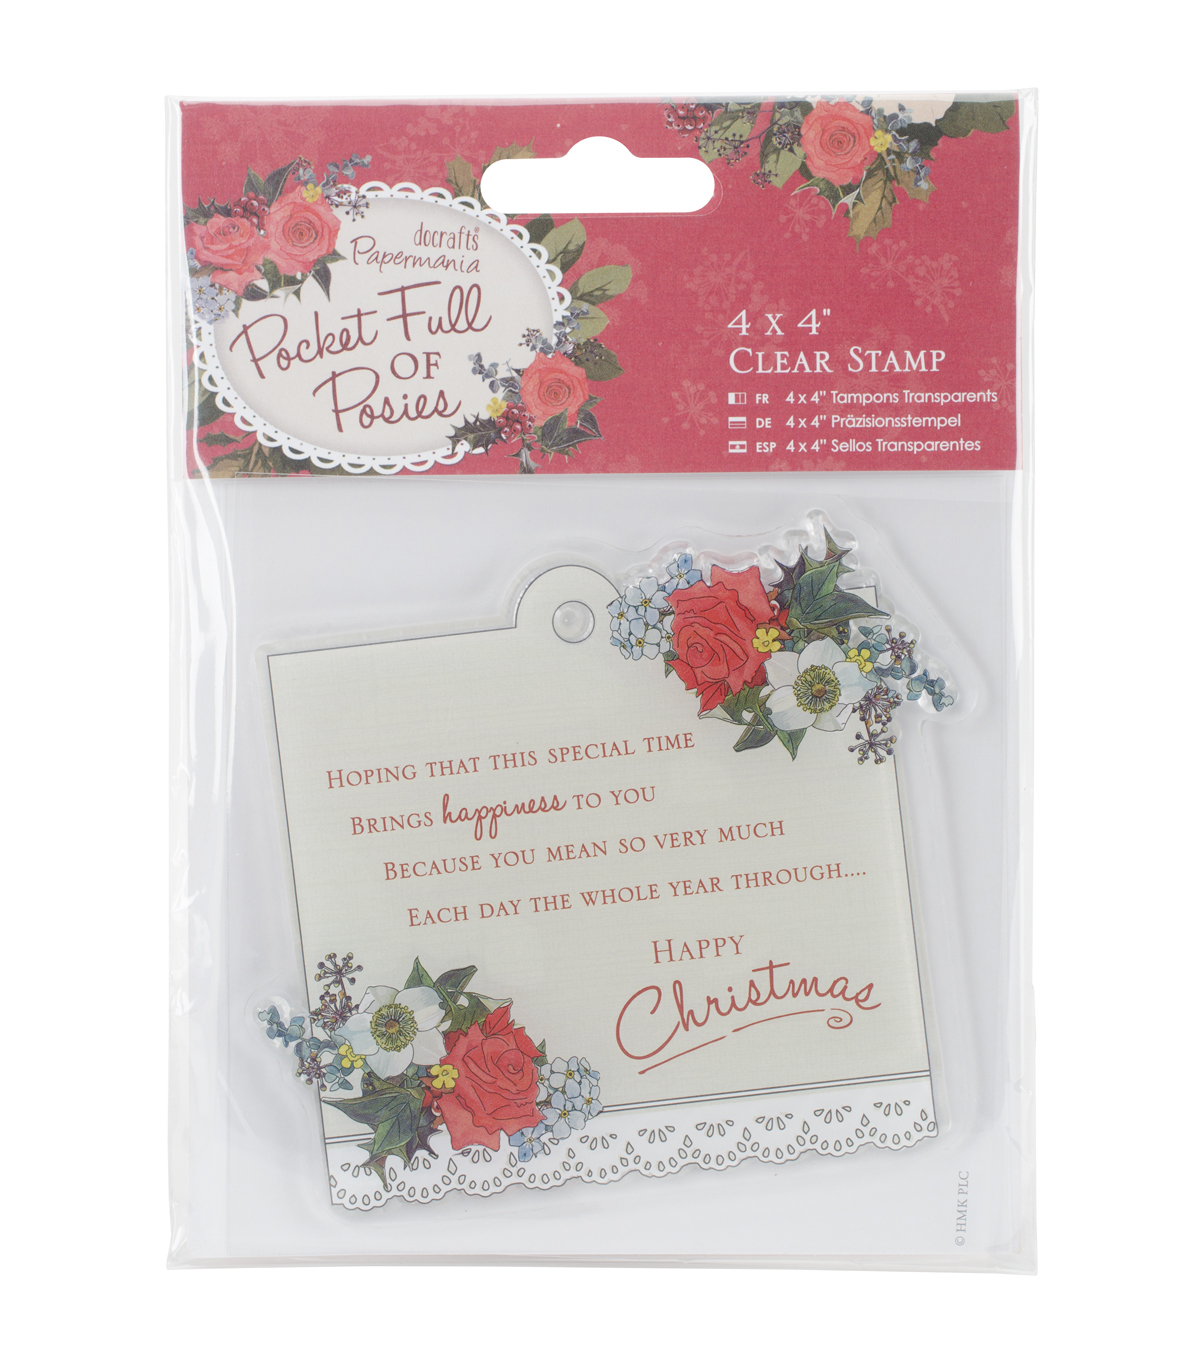 Papermania Pocket Full Of Posies Clear Stamps-Sentiment